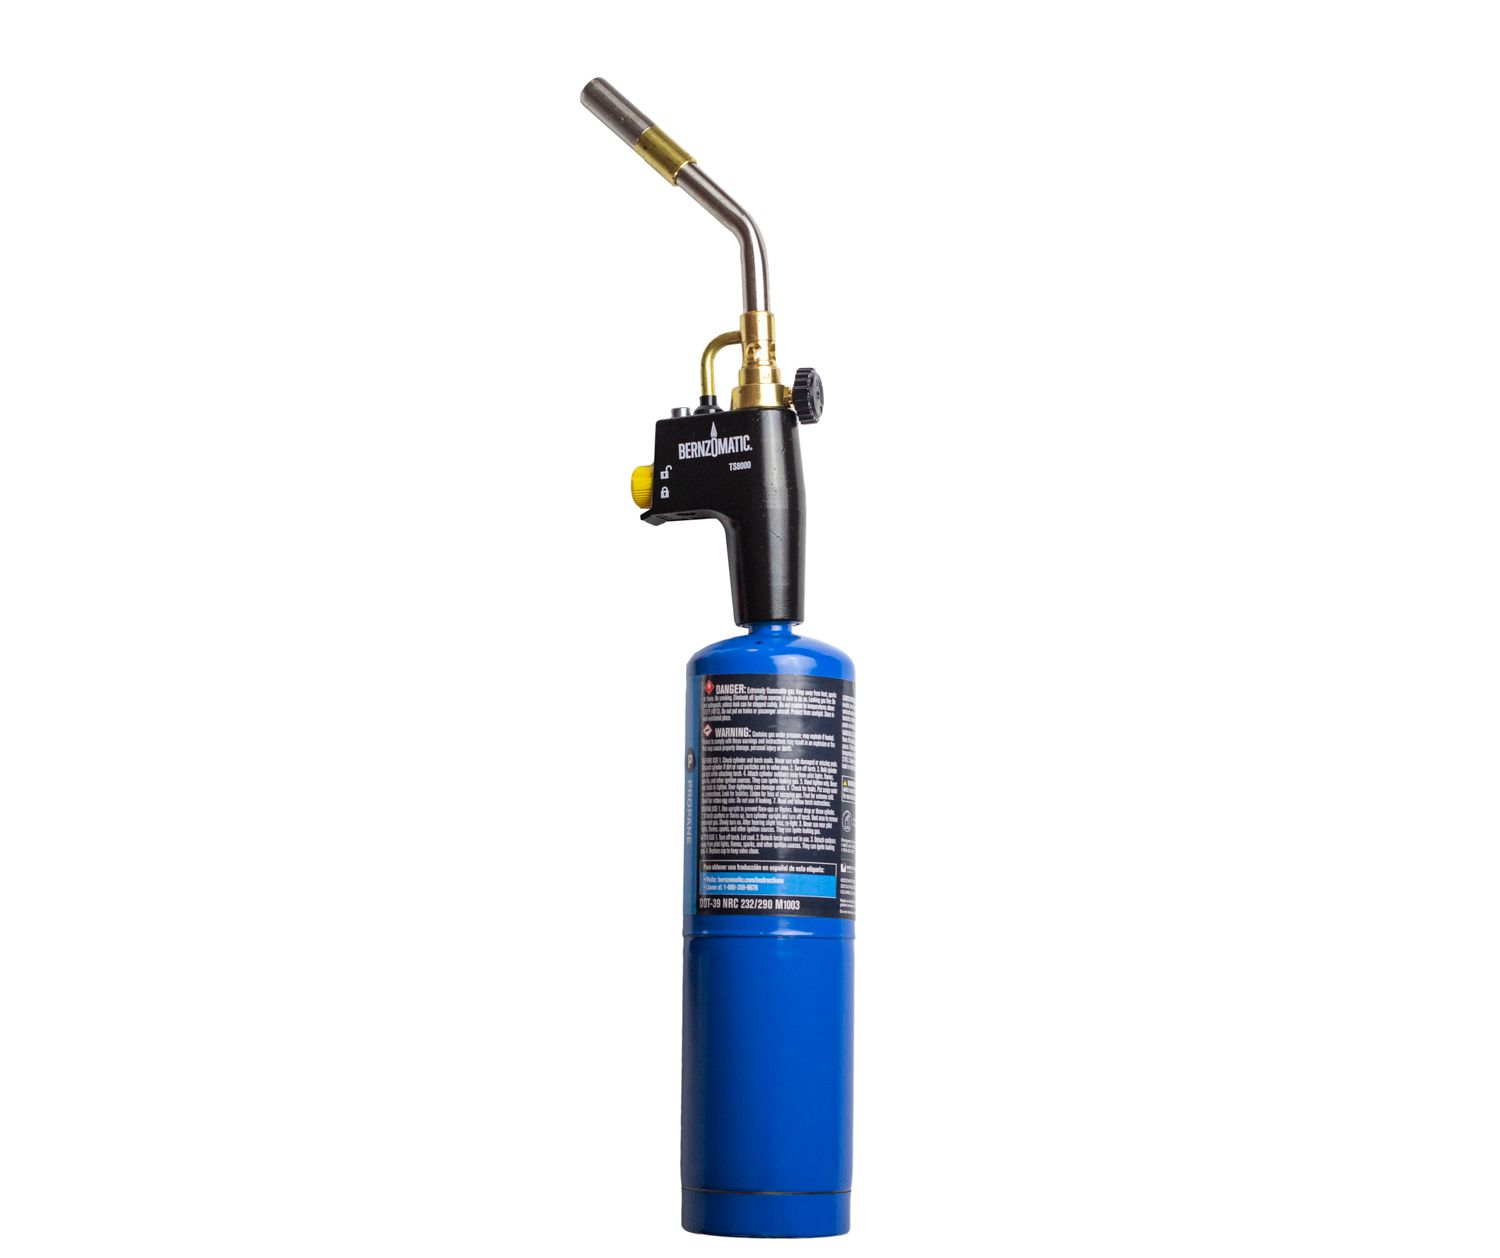 Benzomatic Torch